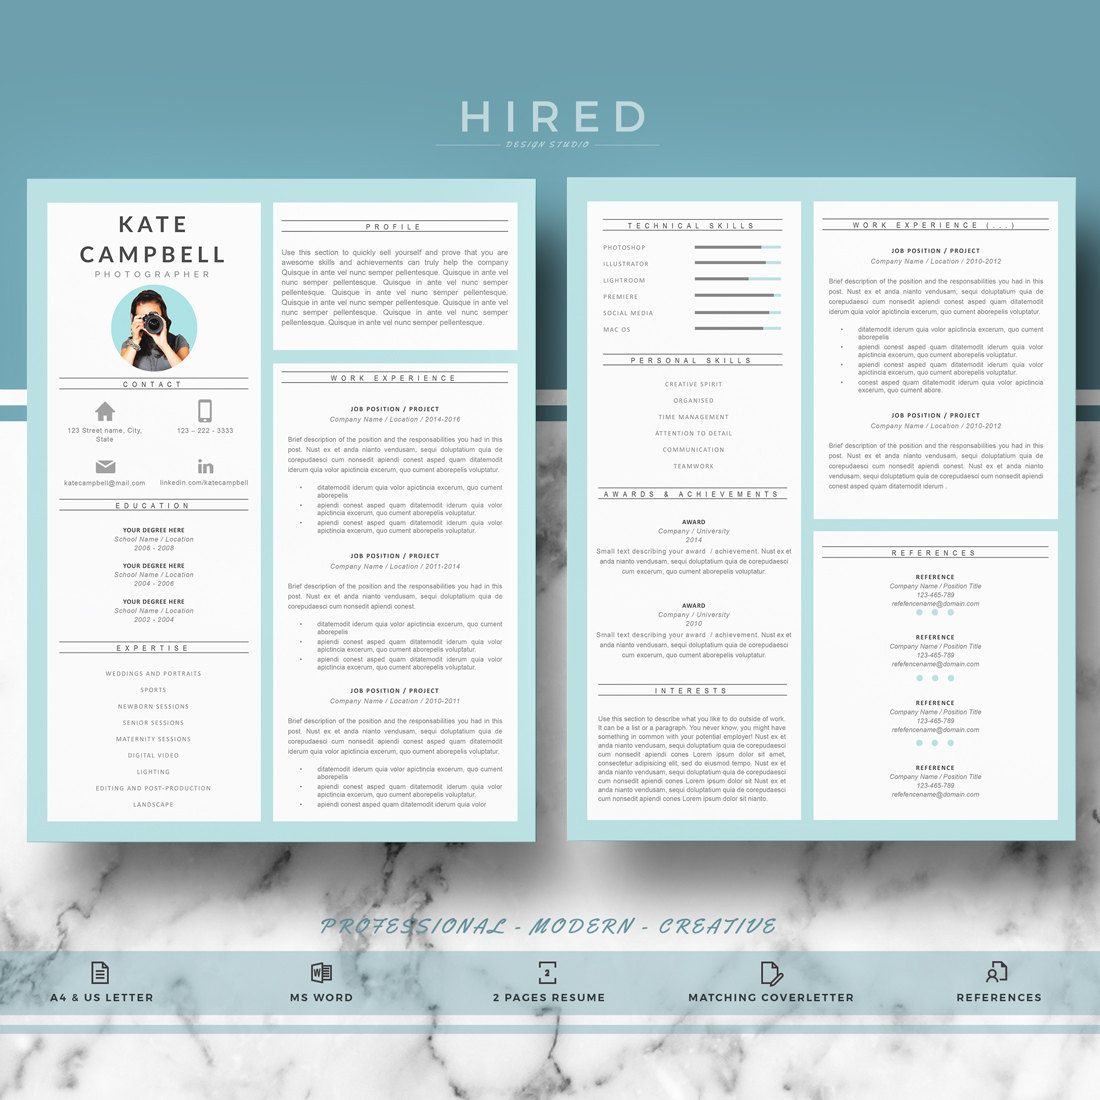 Modern Resume Template for Word: Kate-2 - If you like this template ...